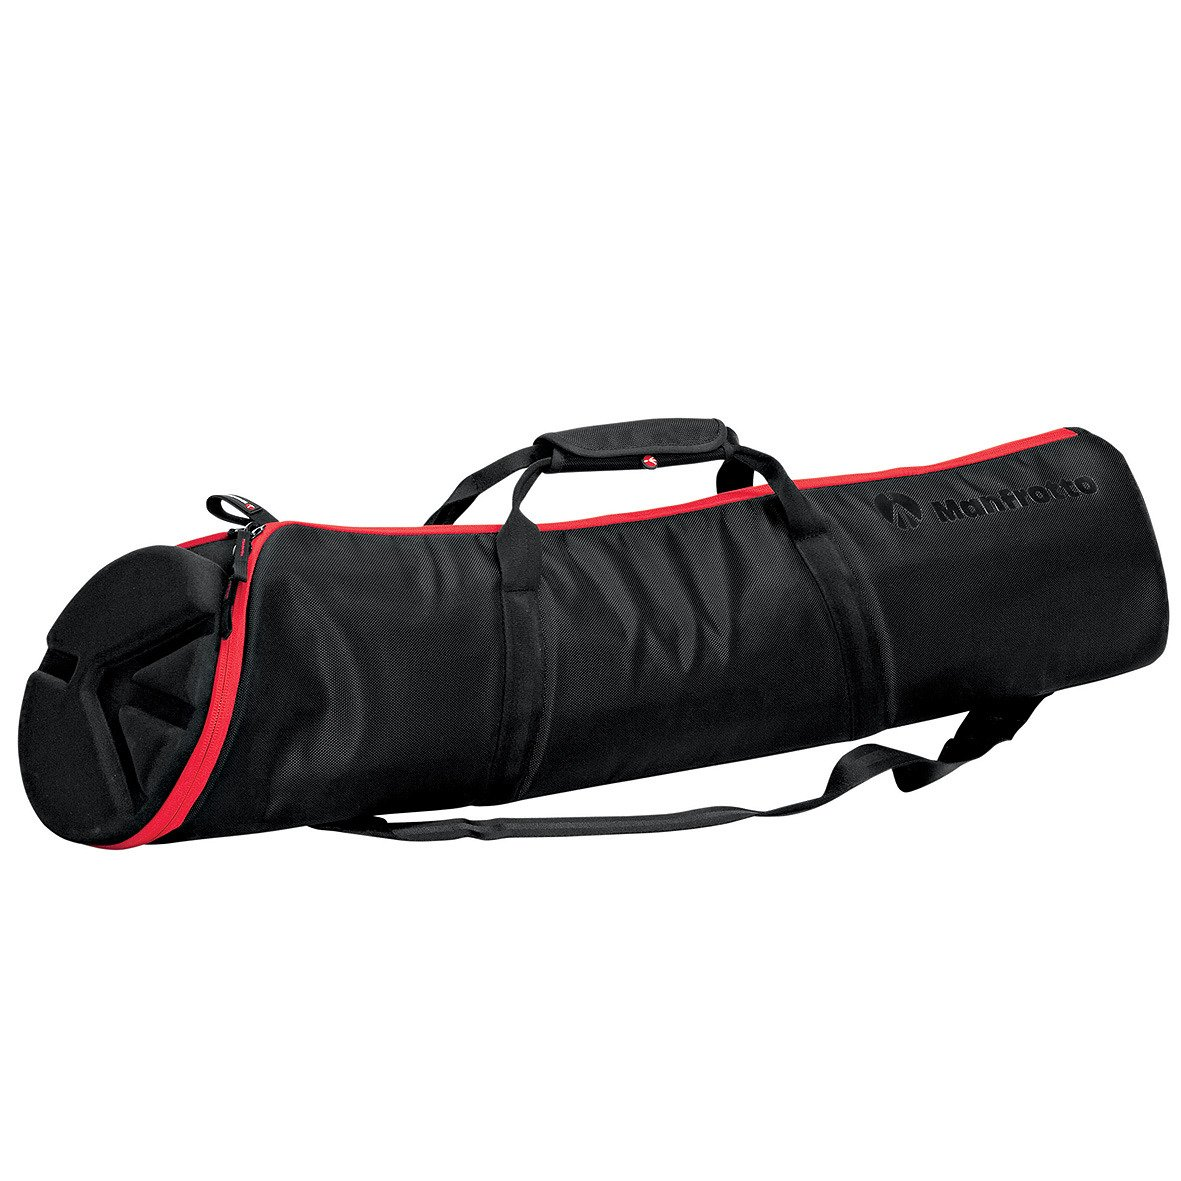 Manfrotto MB MBAG100PN 100cm Padded Tripod Bag by Manfrotto